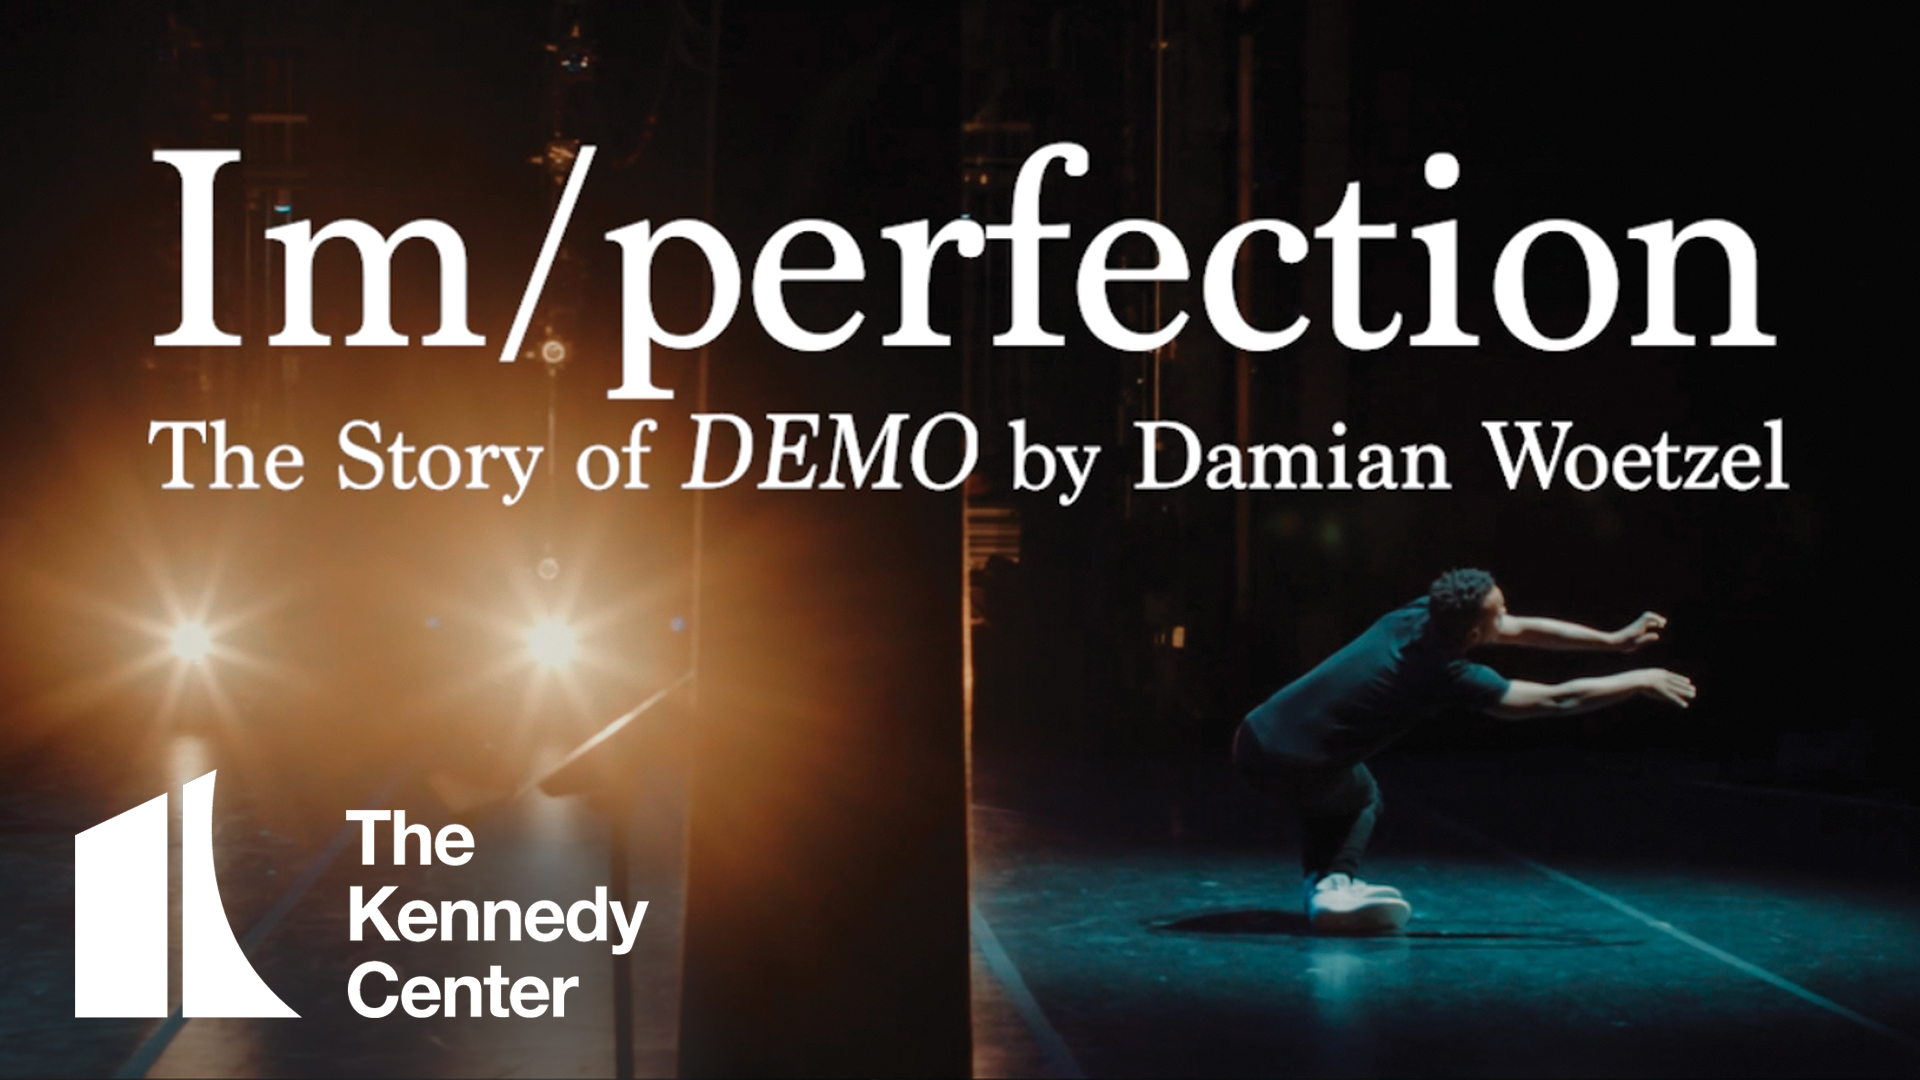 Im/perfection - Dance worlds collide in the story of DEMO by Damian Woetzel